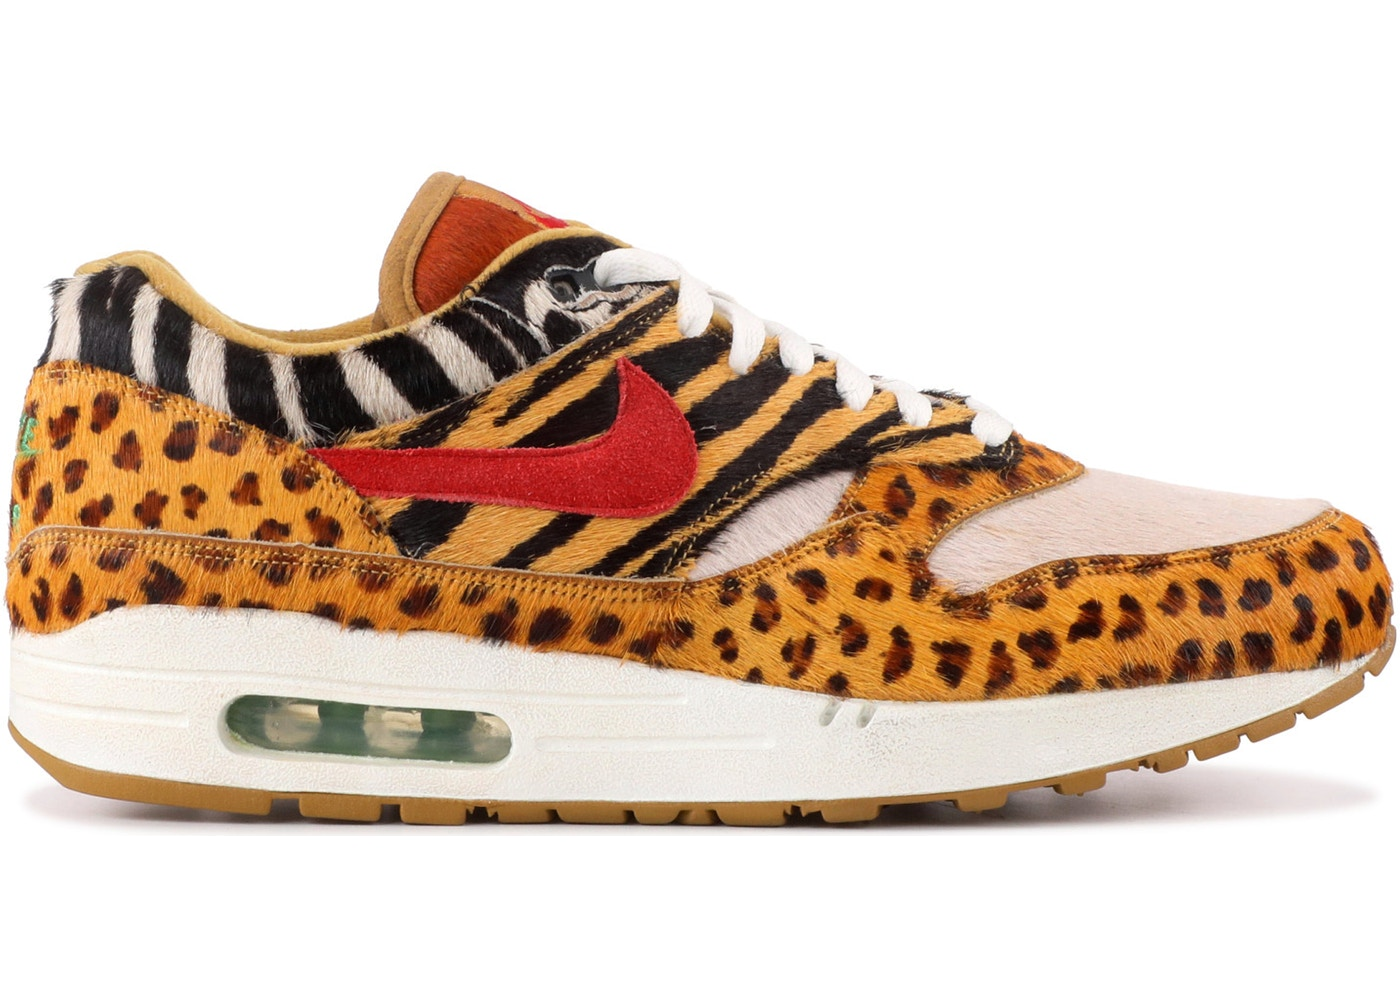 cheaper 412e8 3ba50 Sell. or Ask. Size: 12. View All Bids. Air Max 1 Atmos Animal ...